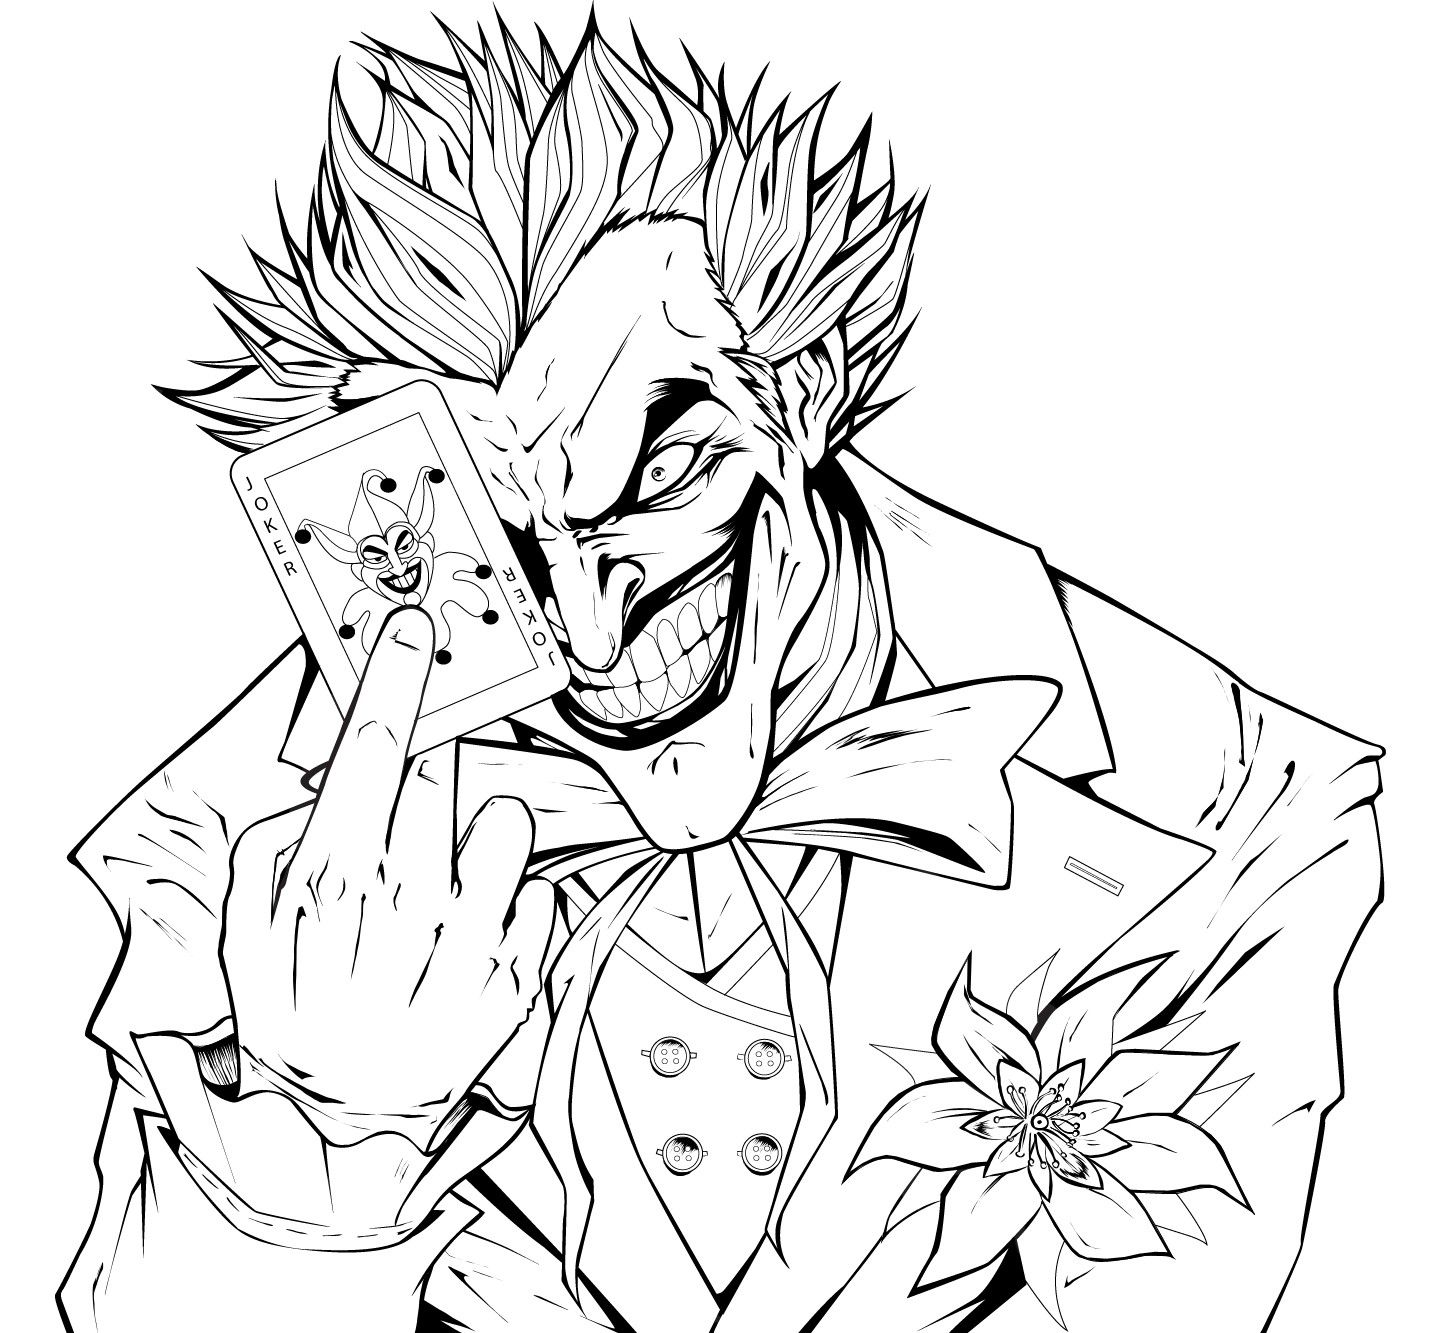 Joker Coloring Pages Printable | My image Sense | Coloring Pages ...